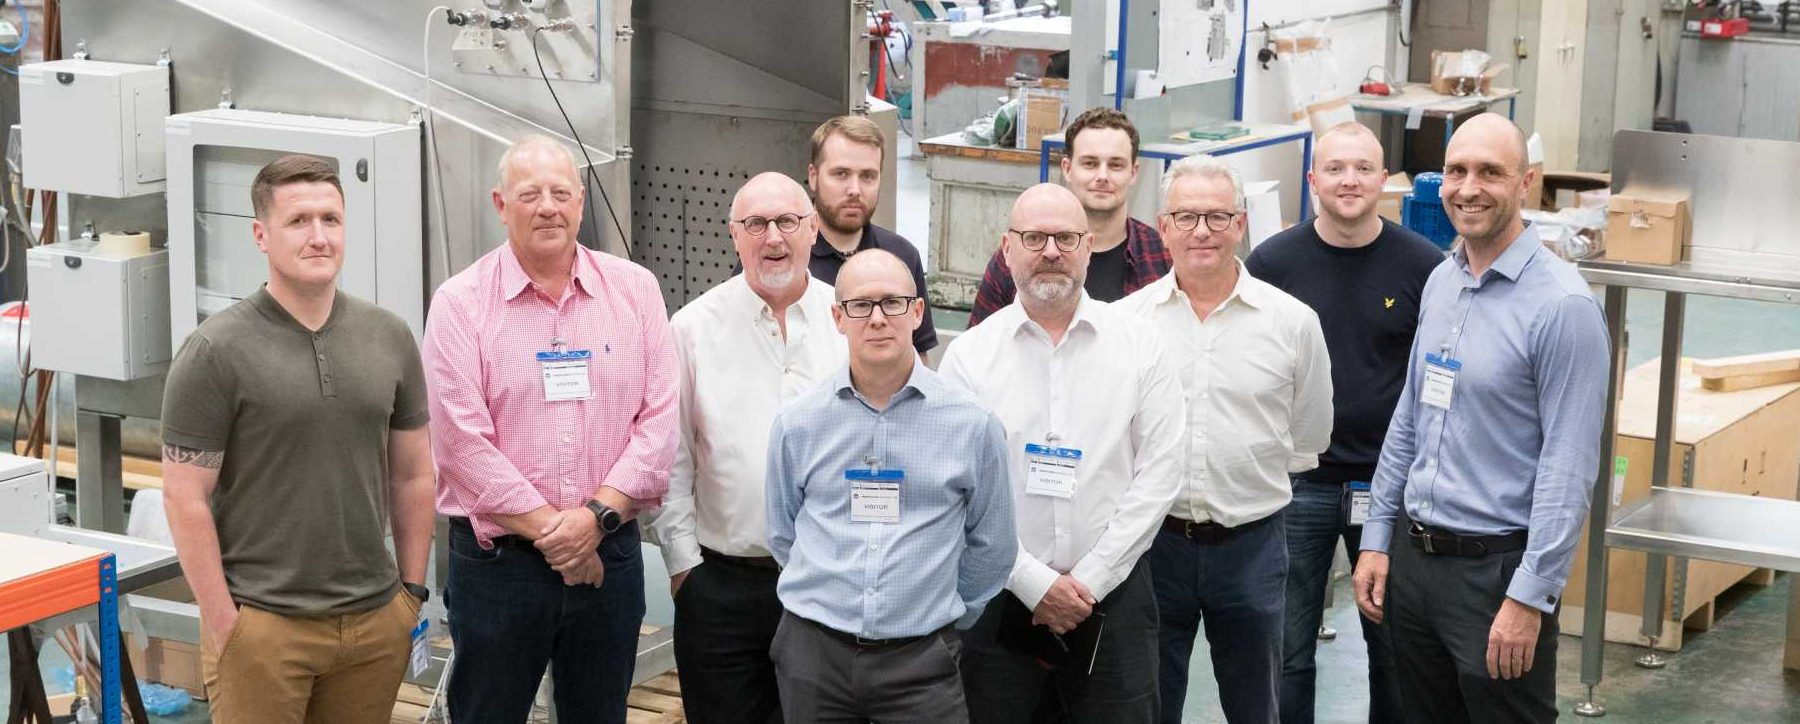 The 12 business leaders recently undertook their first site visit to Runcorn-based Hosokawa Micron – image courtesy of Made Smarter.